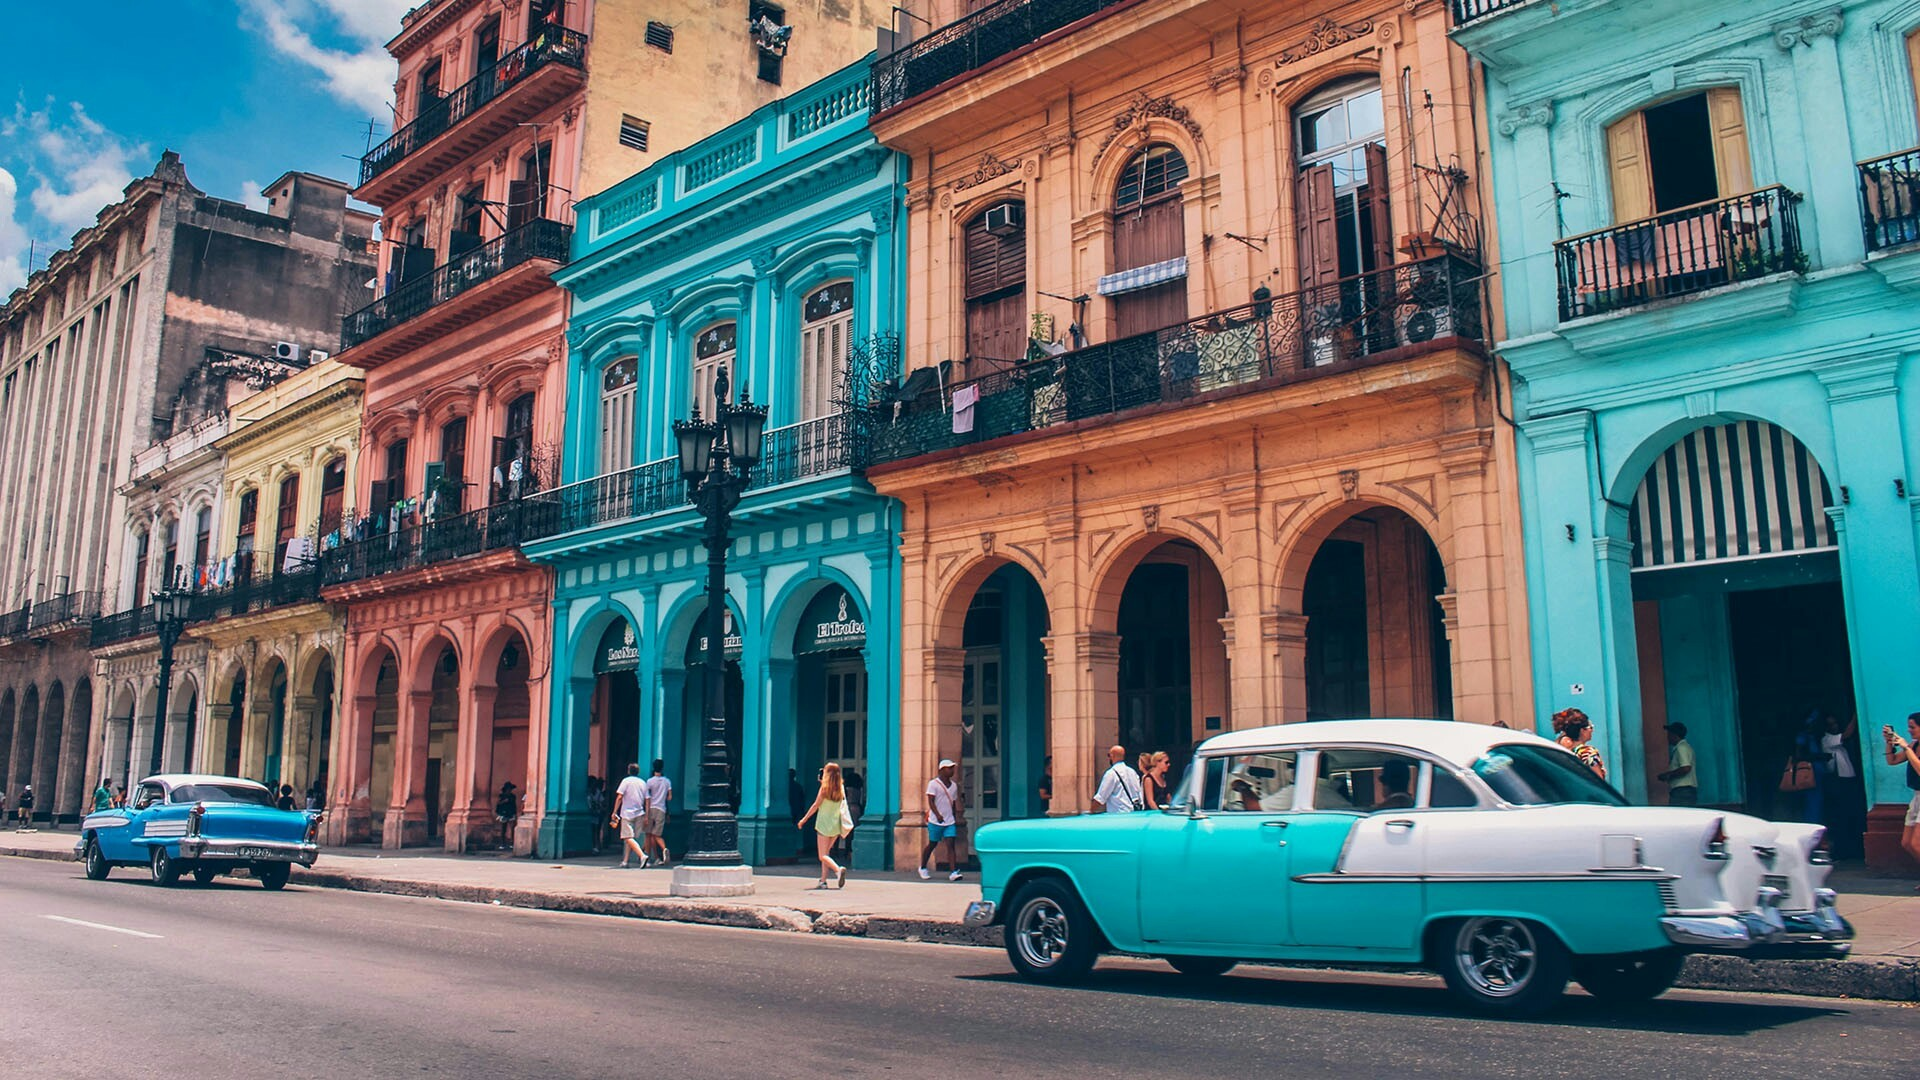 Res: 1920x1080, Colorful Havana With Vintage Cars Wallpaper | Wallpaper Studio 10 | Tens of  thousands HD and UltraHD wallpapers for Android, Windows and Xbox